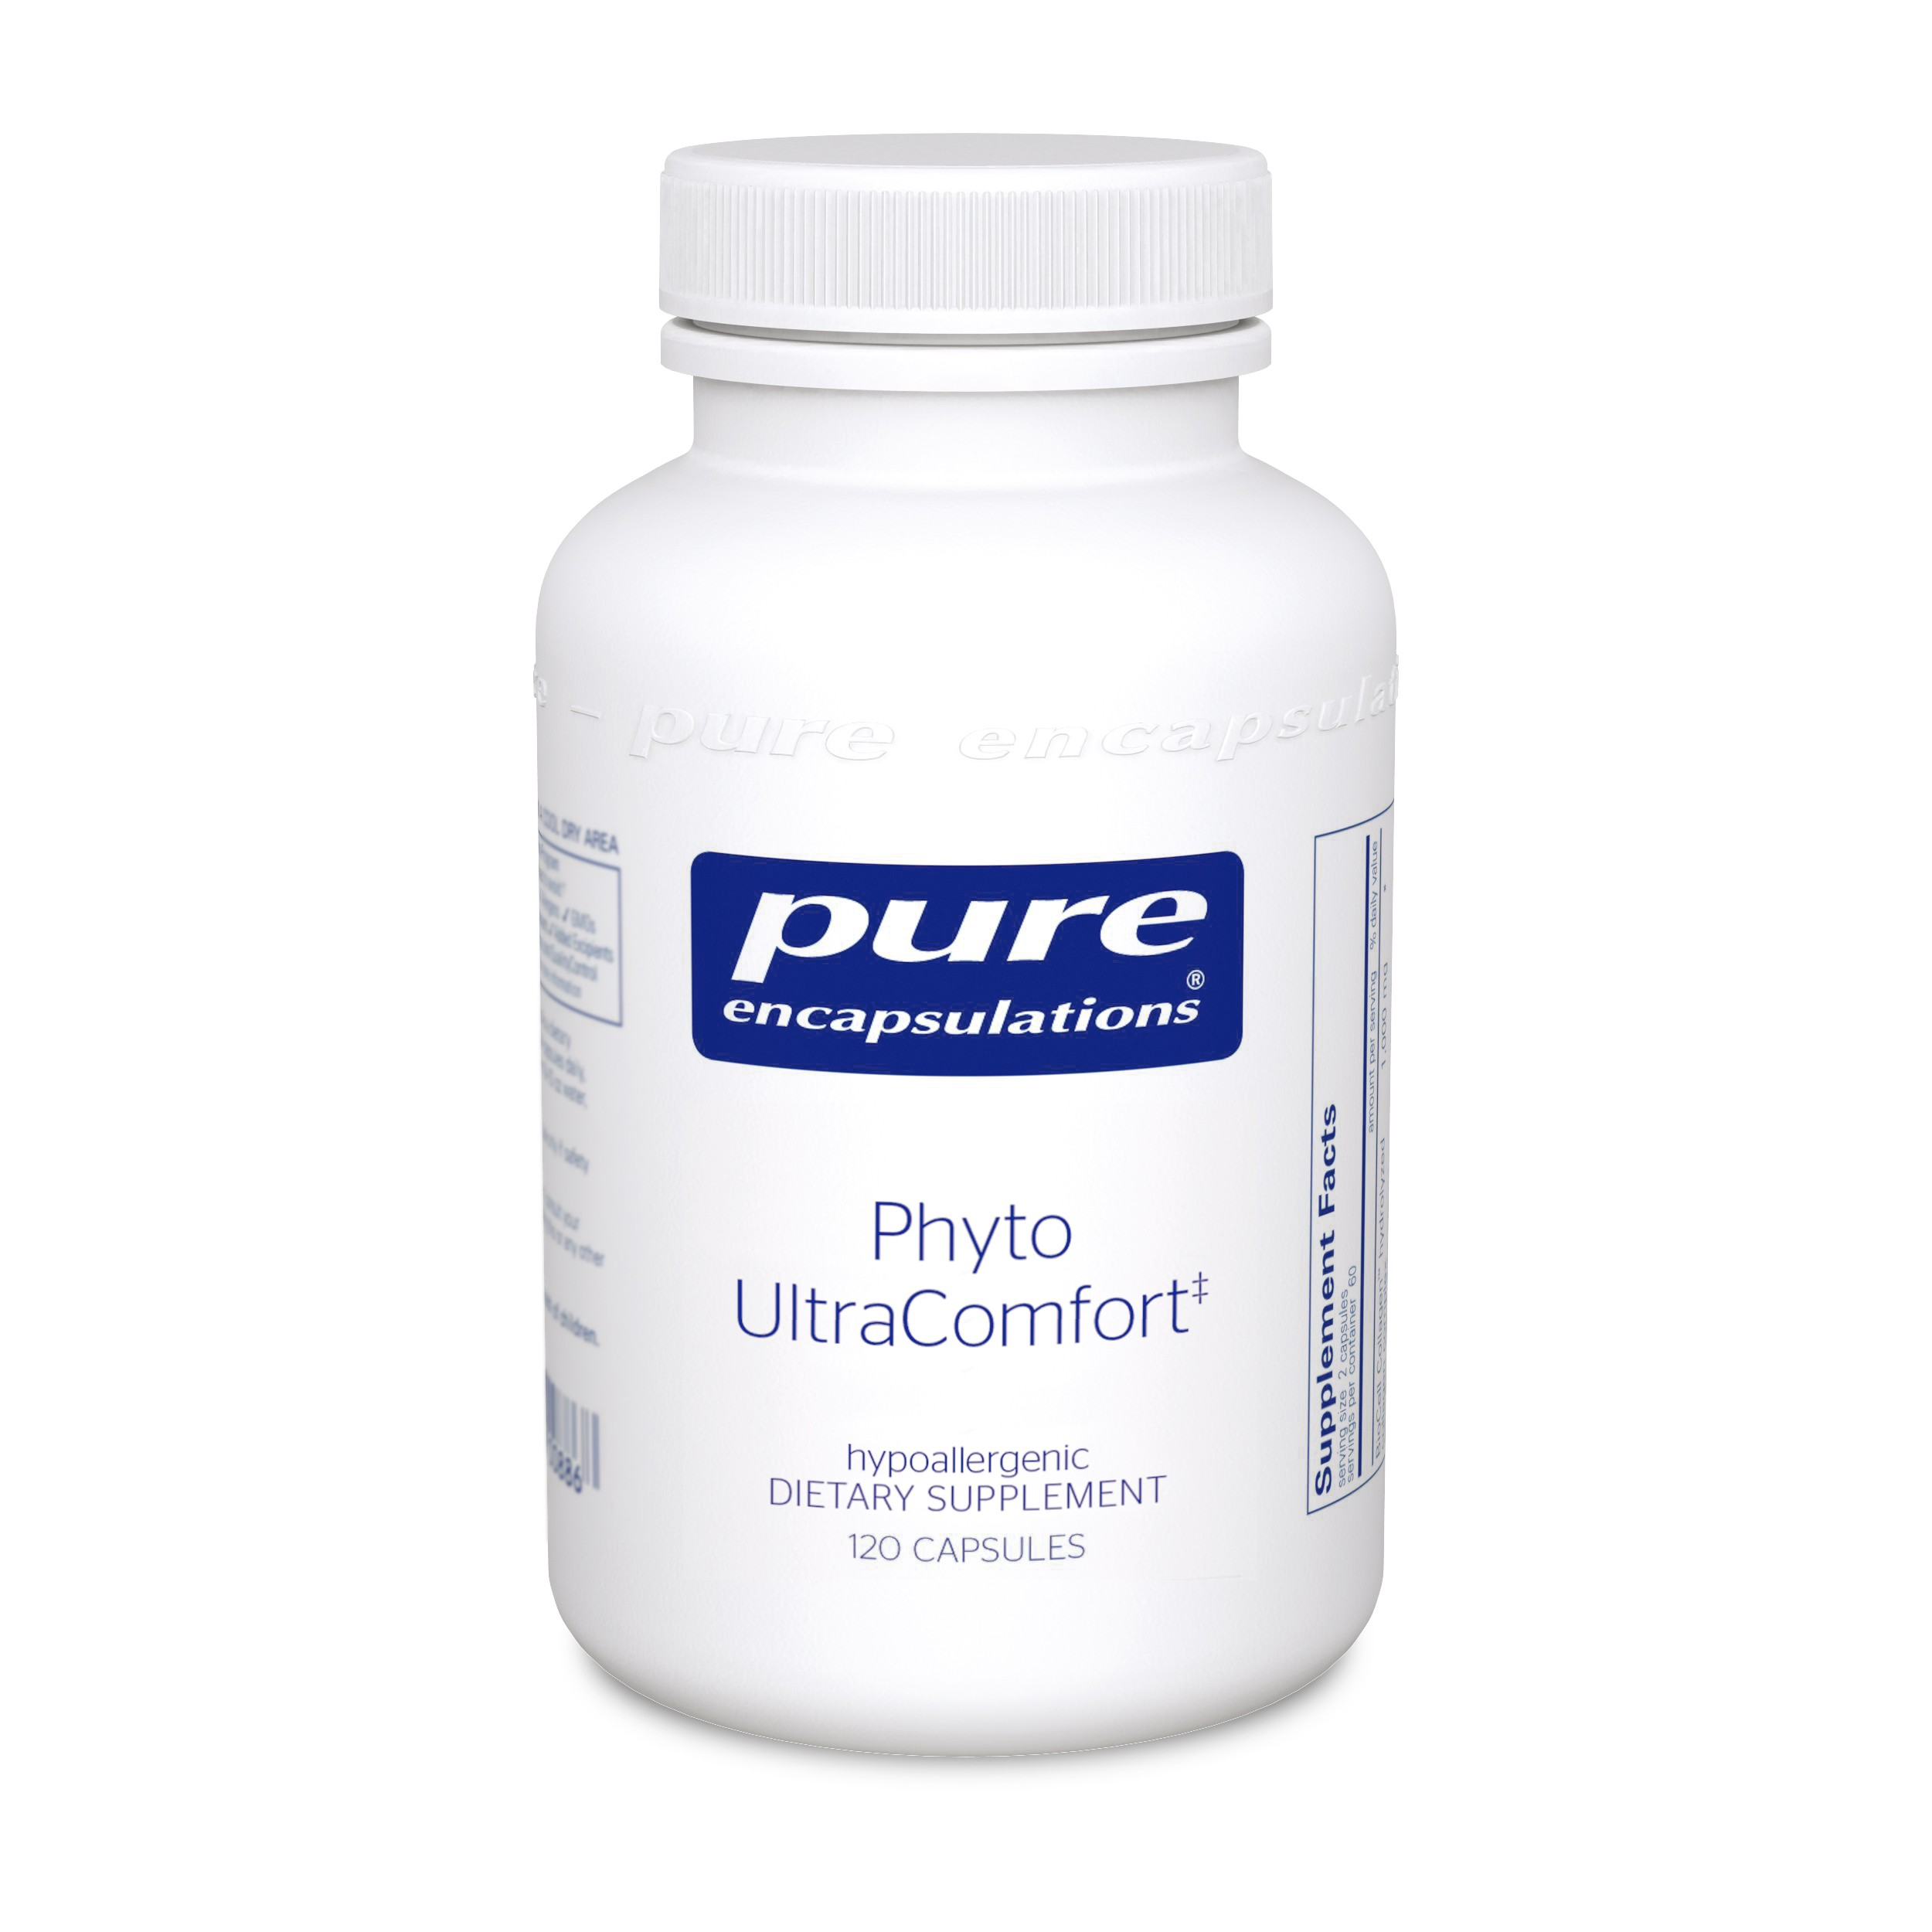 Phyto UltraComfort, 120 caps